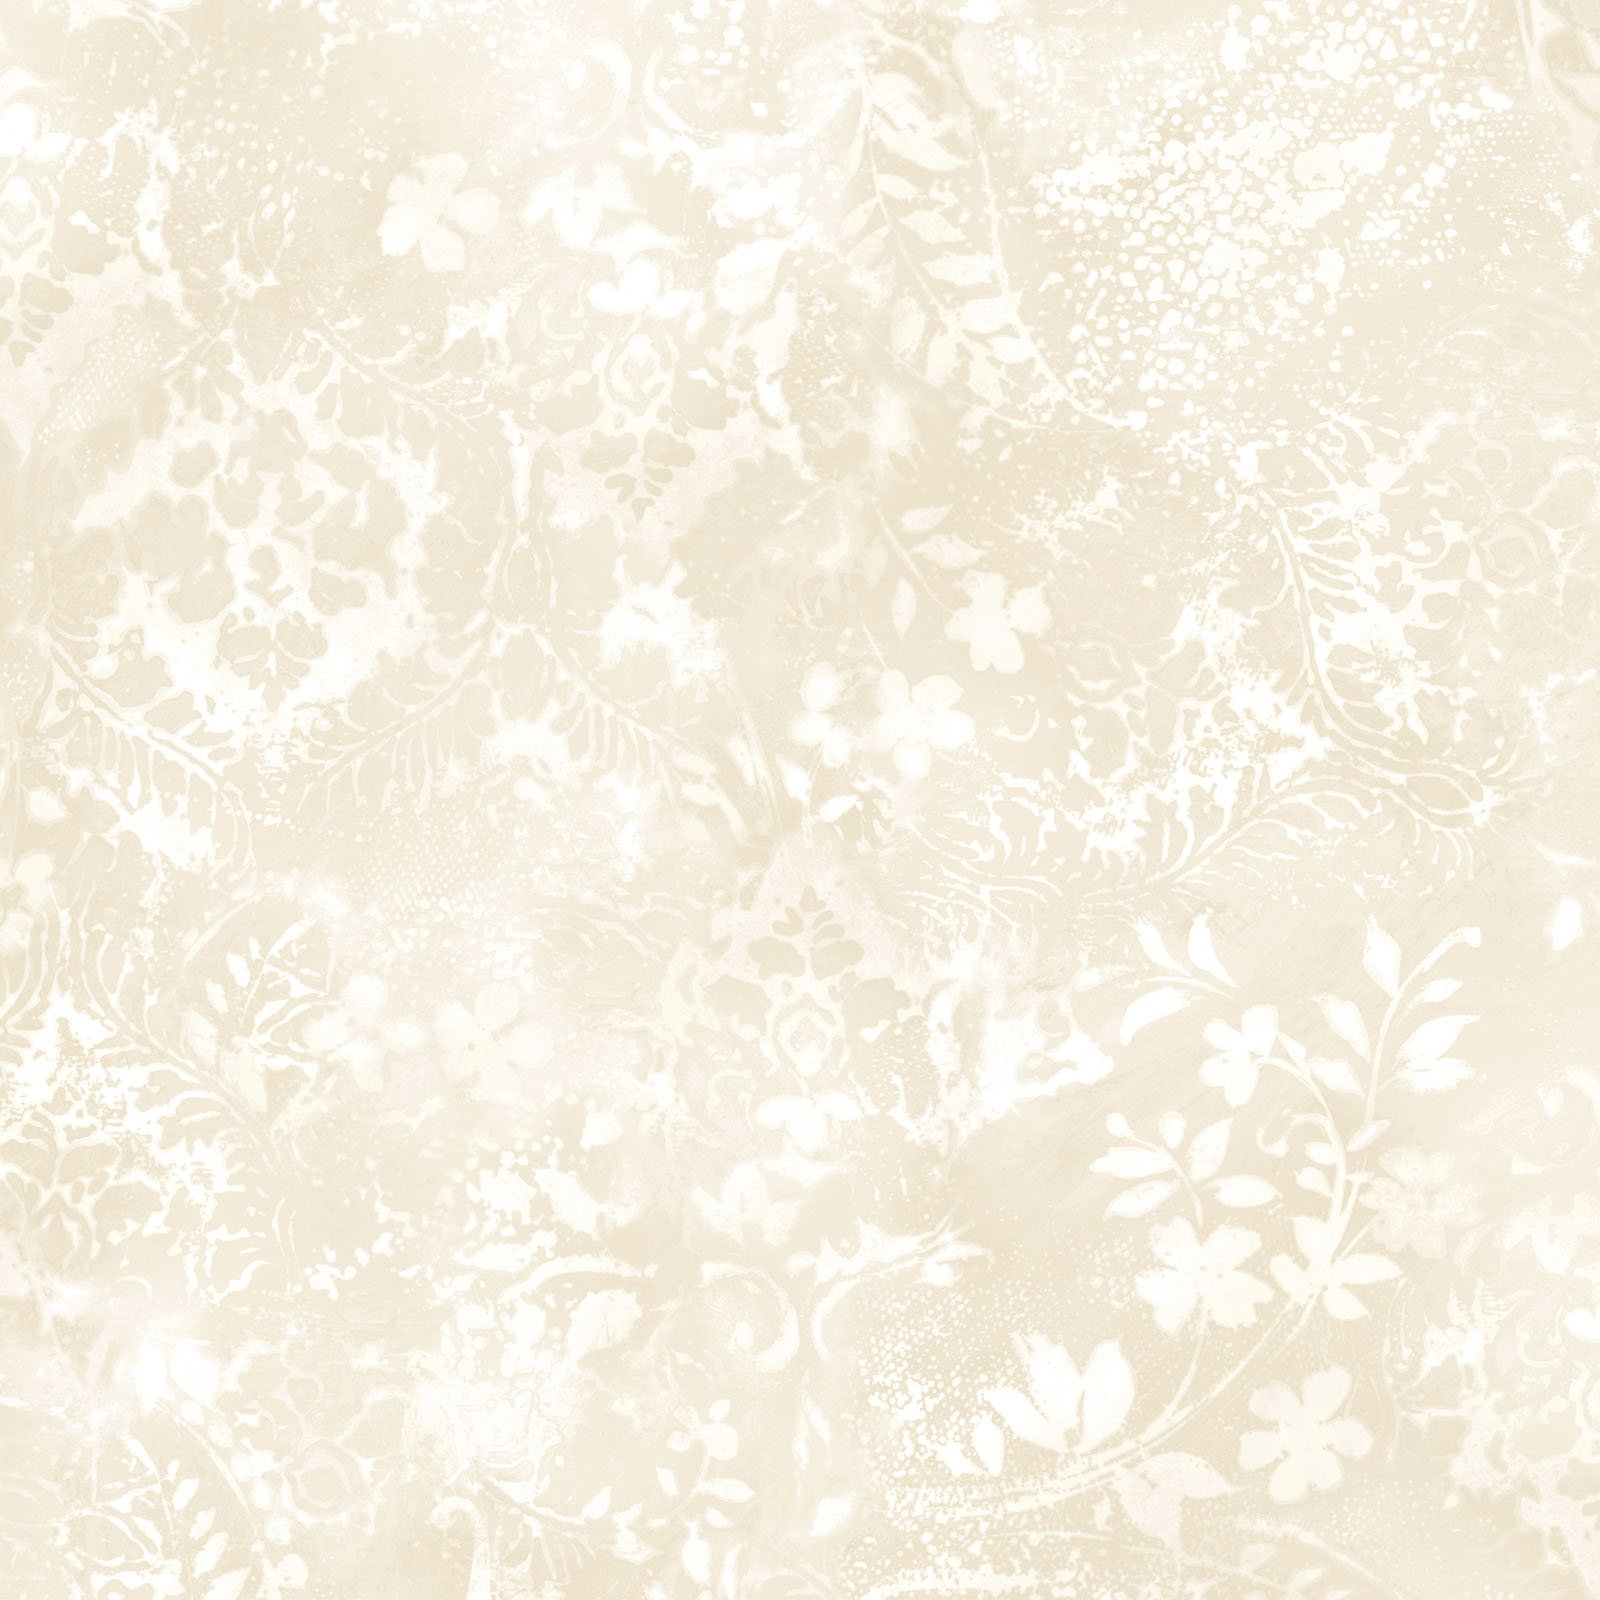 EESC-QBD105 E - BEAUTIFUL BACKING 108 VINTAGE DAMASK BY MAYWOOD CREAM - ARRIVING IN MAY 2021